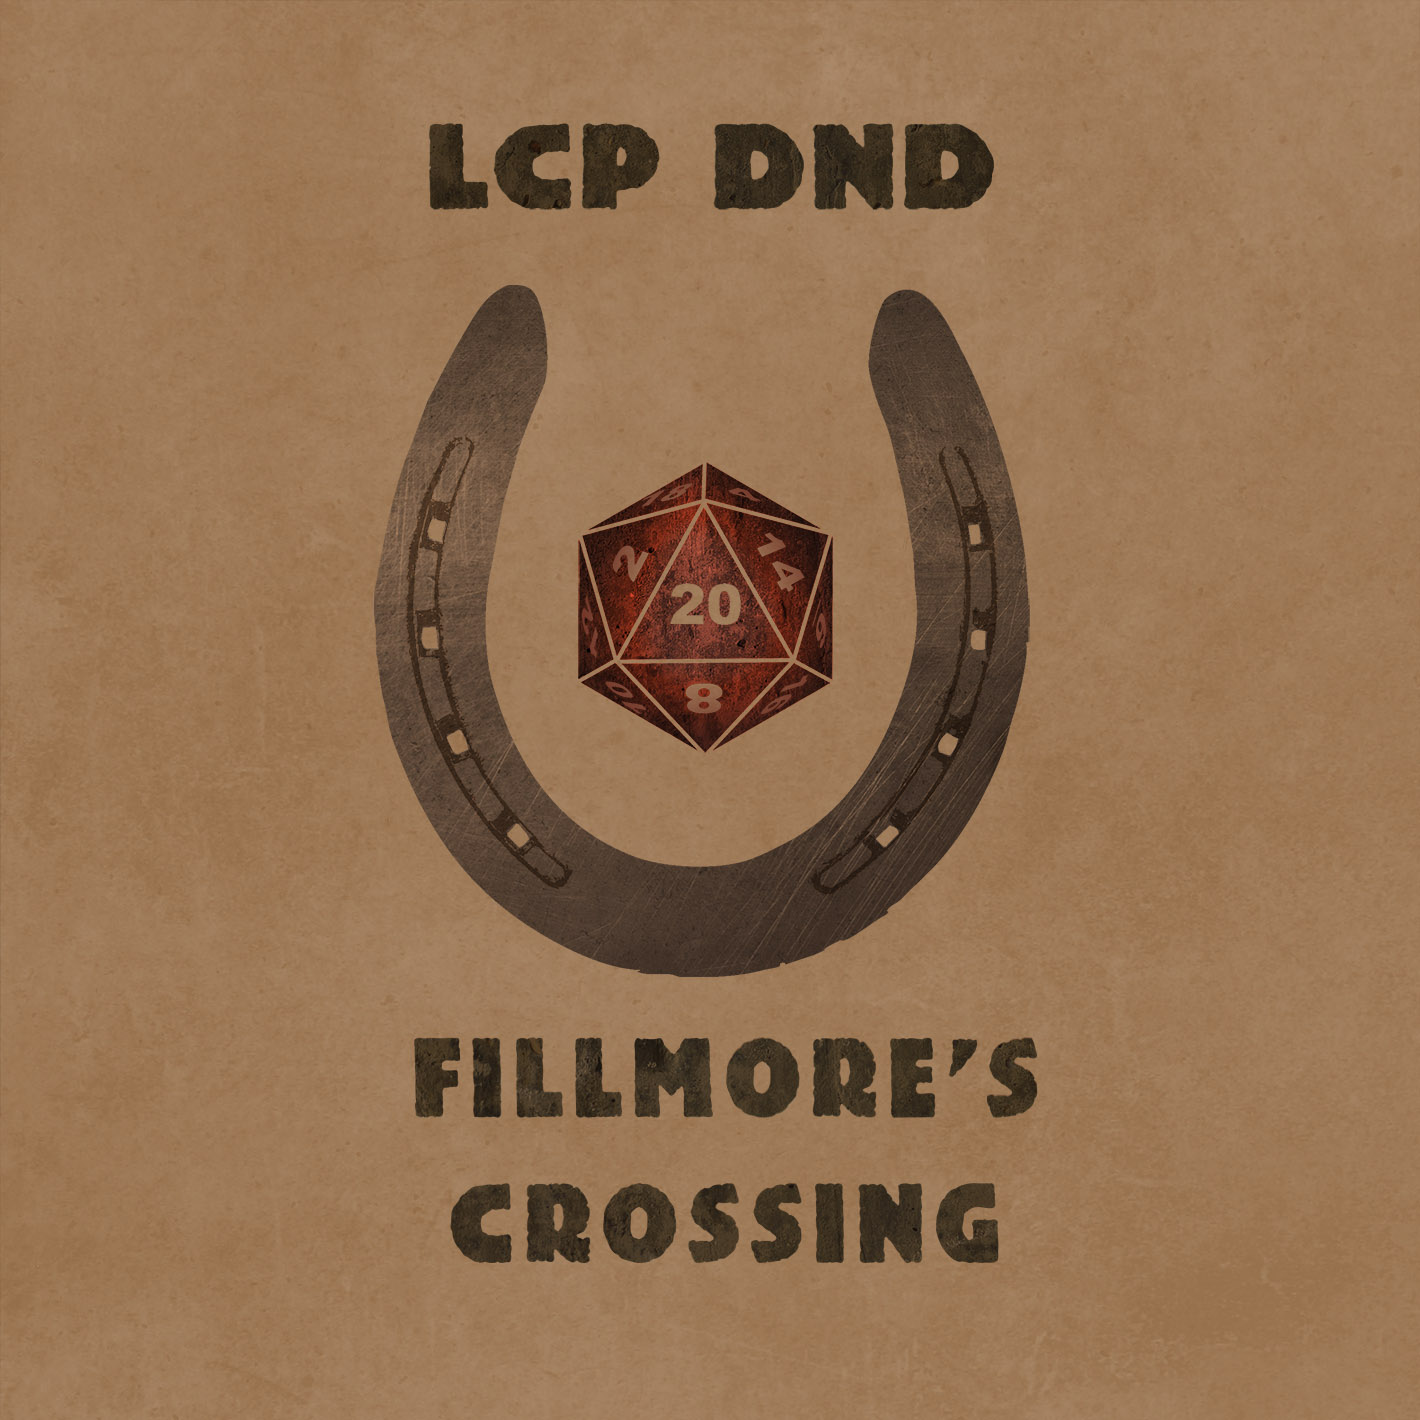 Fillmore's Crossing | Episode 16 | Dead Of Night